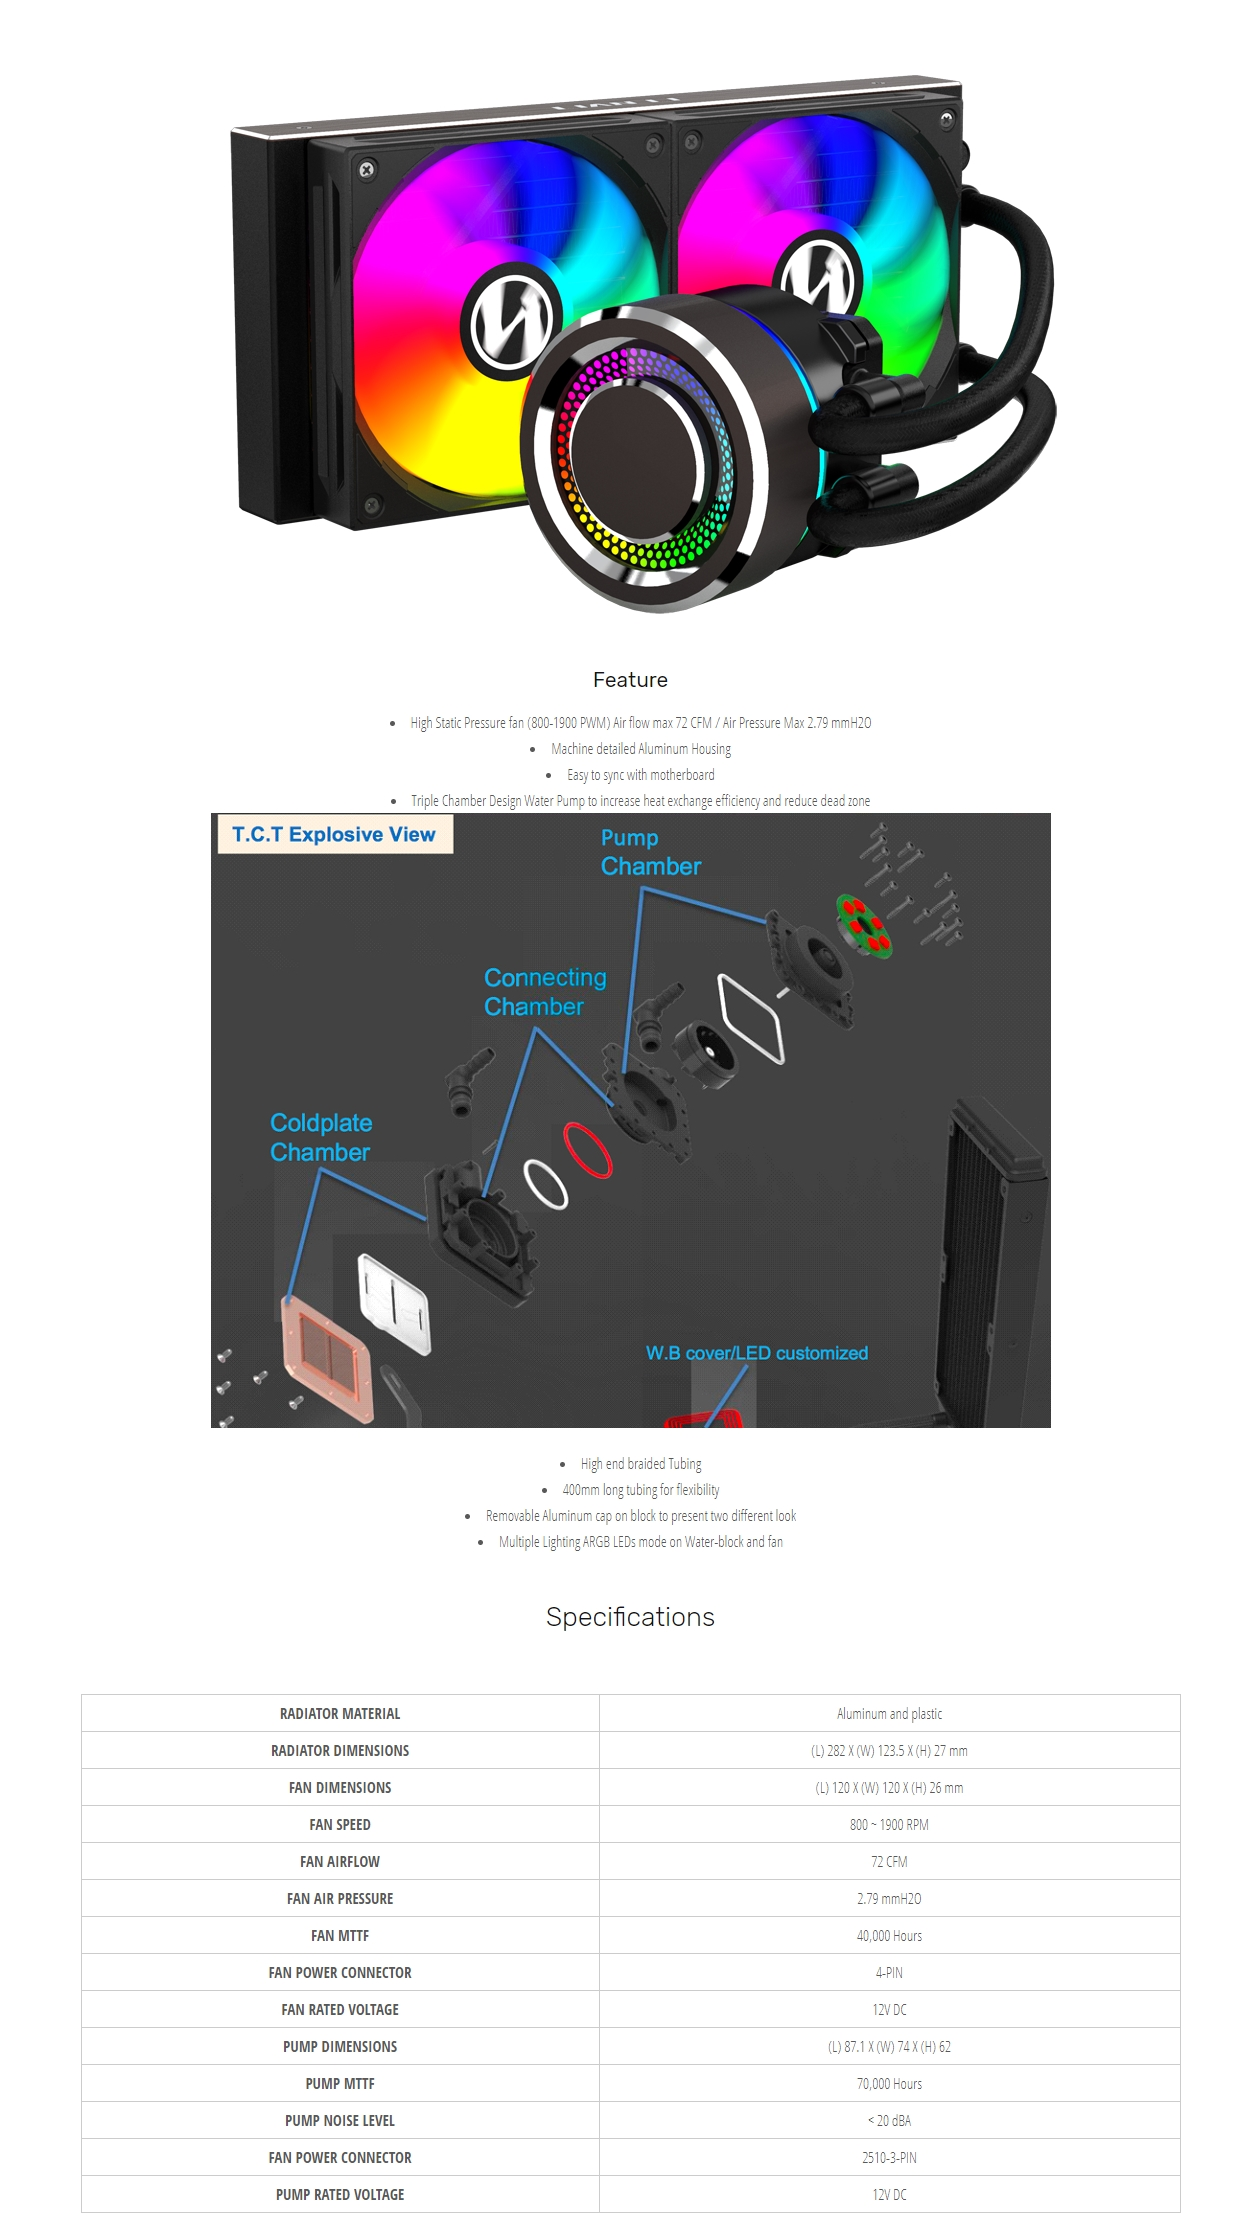 A large marketing image providing additional information about the product Lian-Li Galahad 240mm Black ARGB AIO Liquid CPU Cooler - Additional alt info not provided